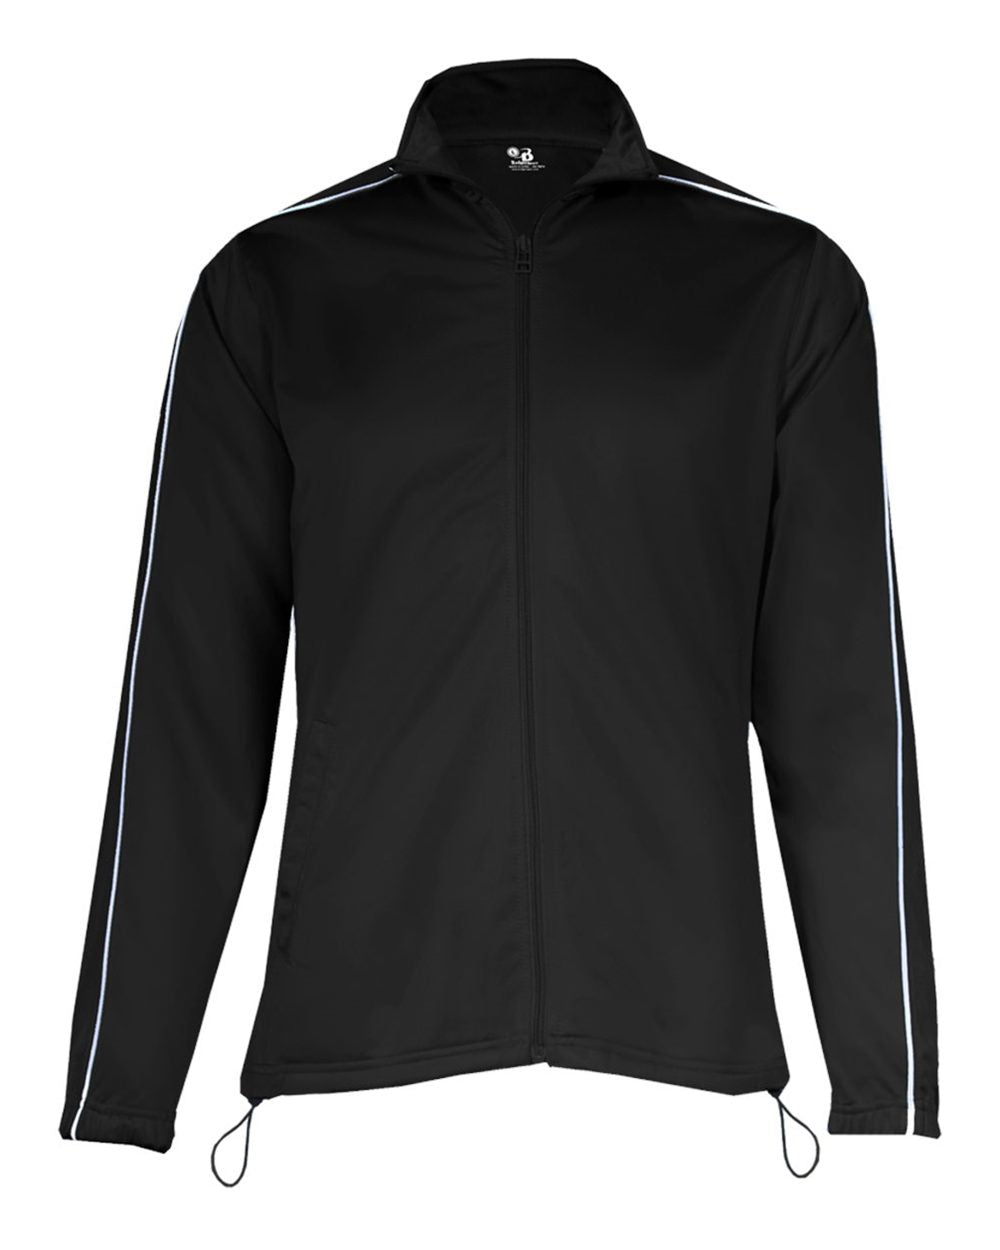 Brushed Tricot Women's Razor Jacket